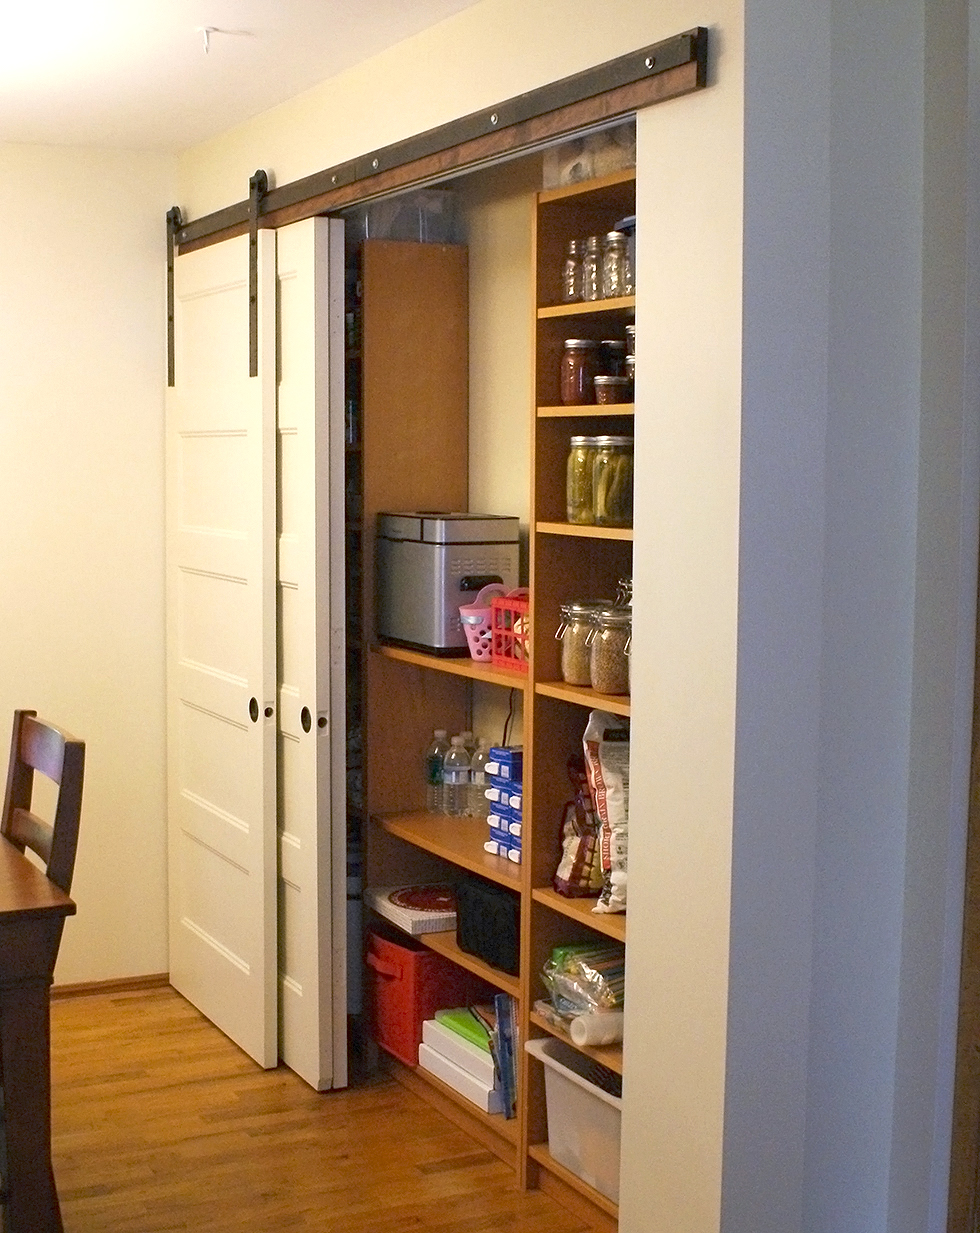 Sliding barn door in a pantry